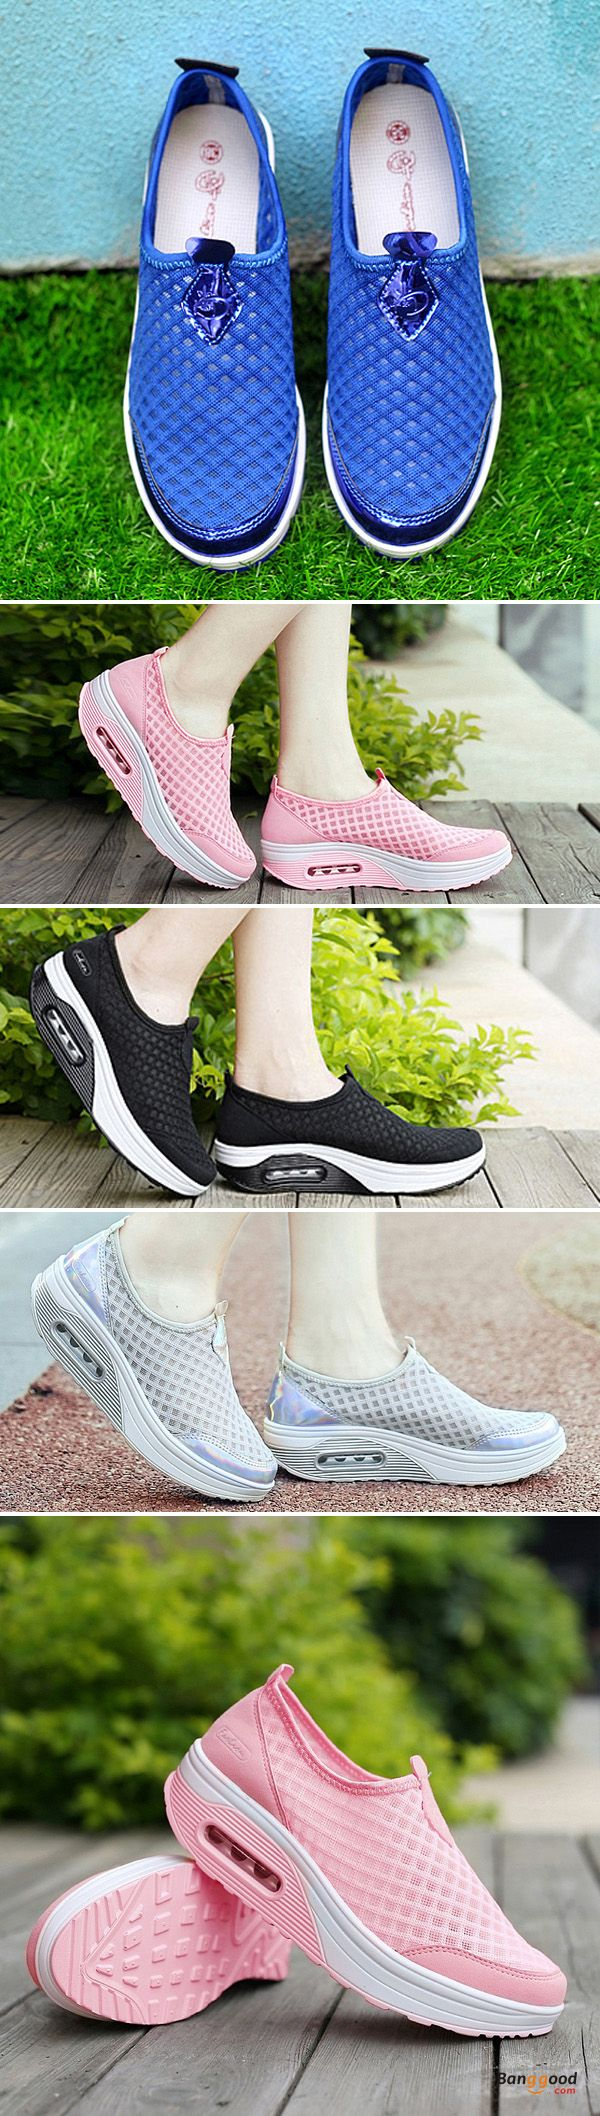 US$28.99 + Free shipping. Size(US): 5~11. Color: Black, Gray, Pink, Blue. Upper Material: Mesh. Fall in love with casual and sport style! Summer Sandals, Women Flat Sandals, shoes flats, shoes sandals, Casual, Outdoor, Comfortable.